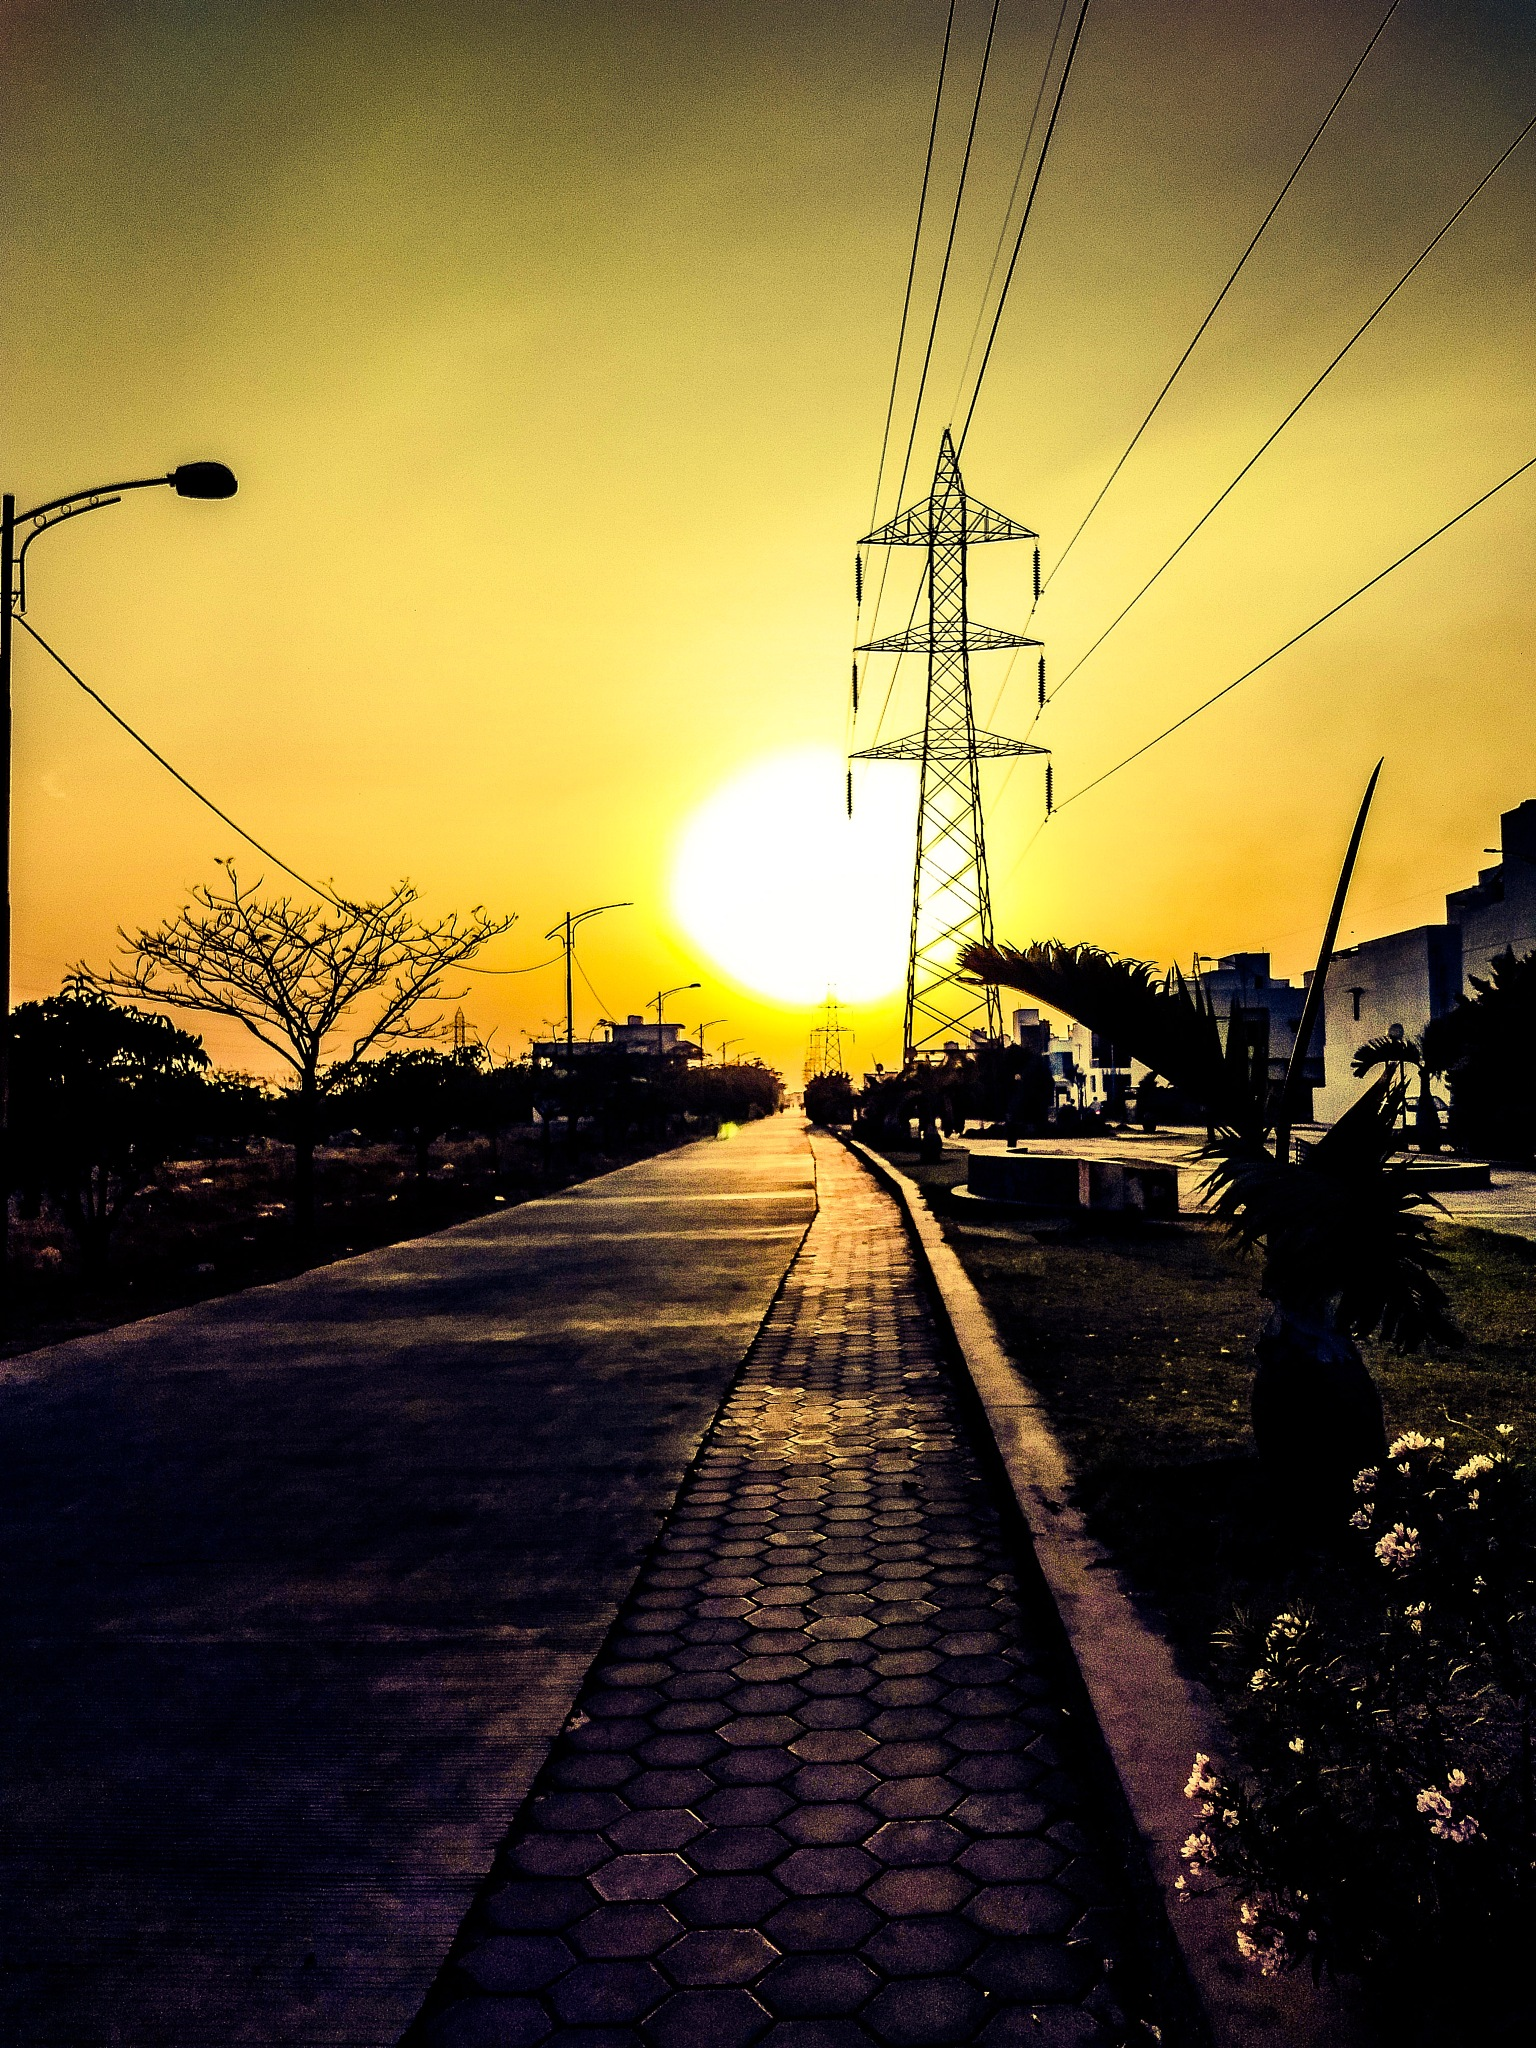 Sun of the urban era by Arpit paliwal